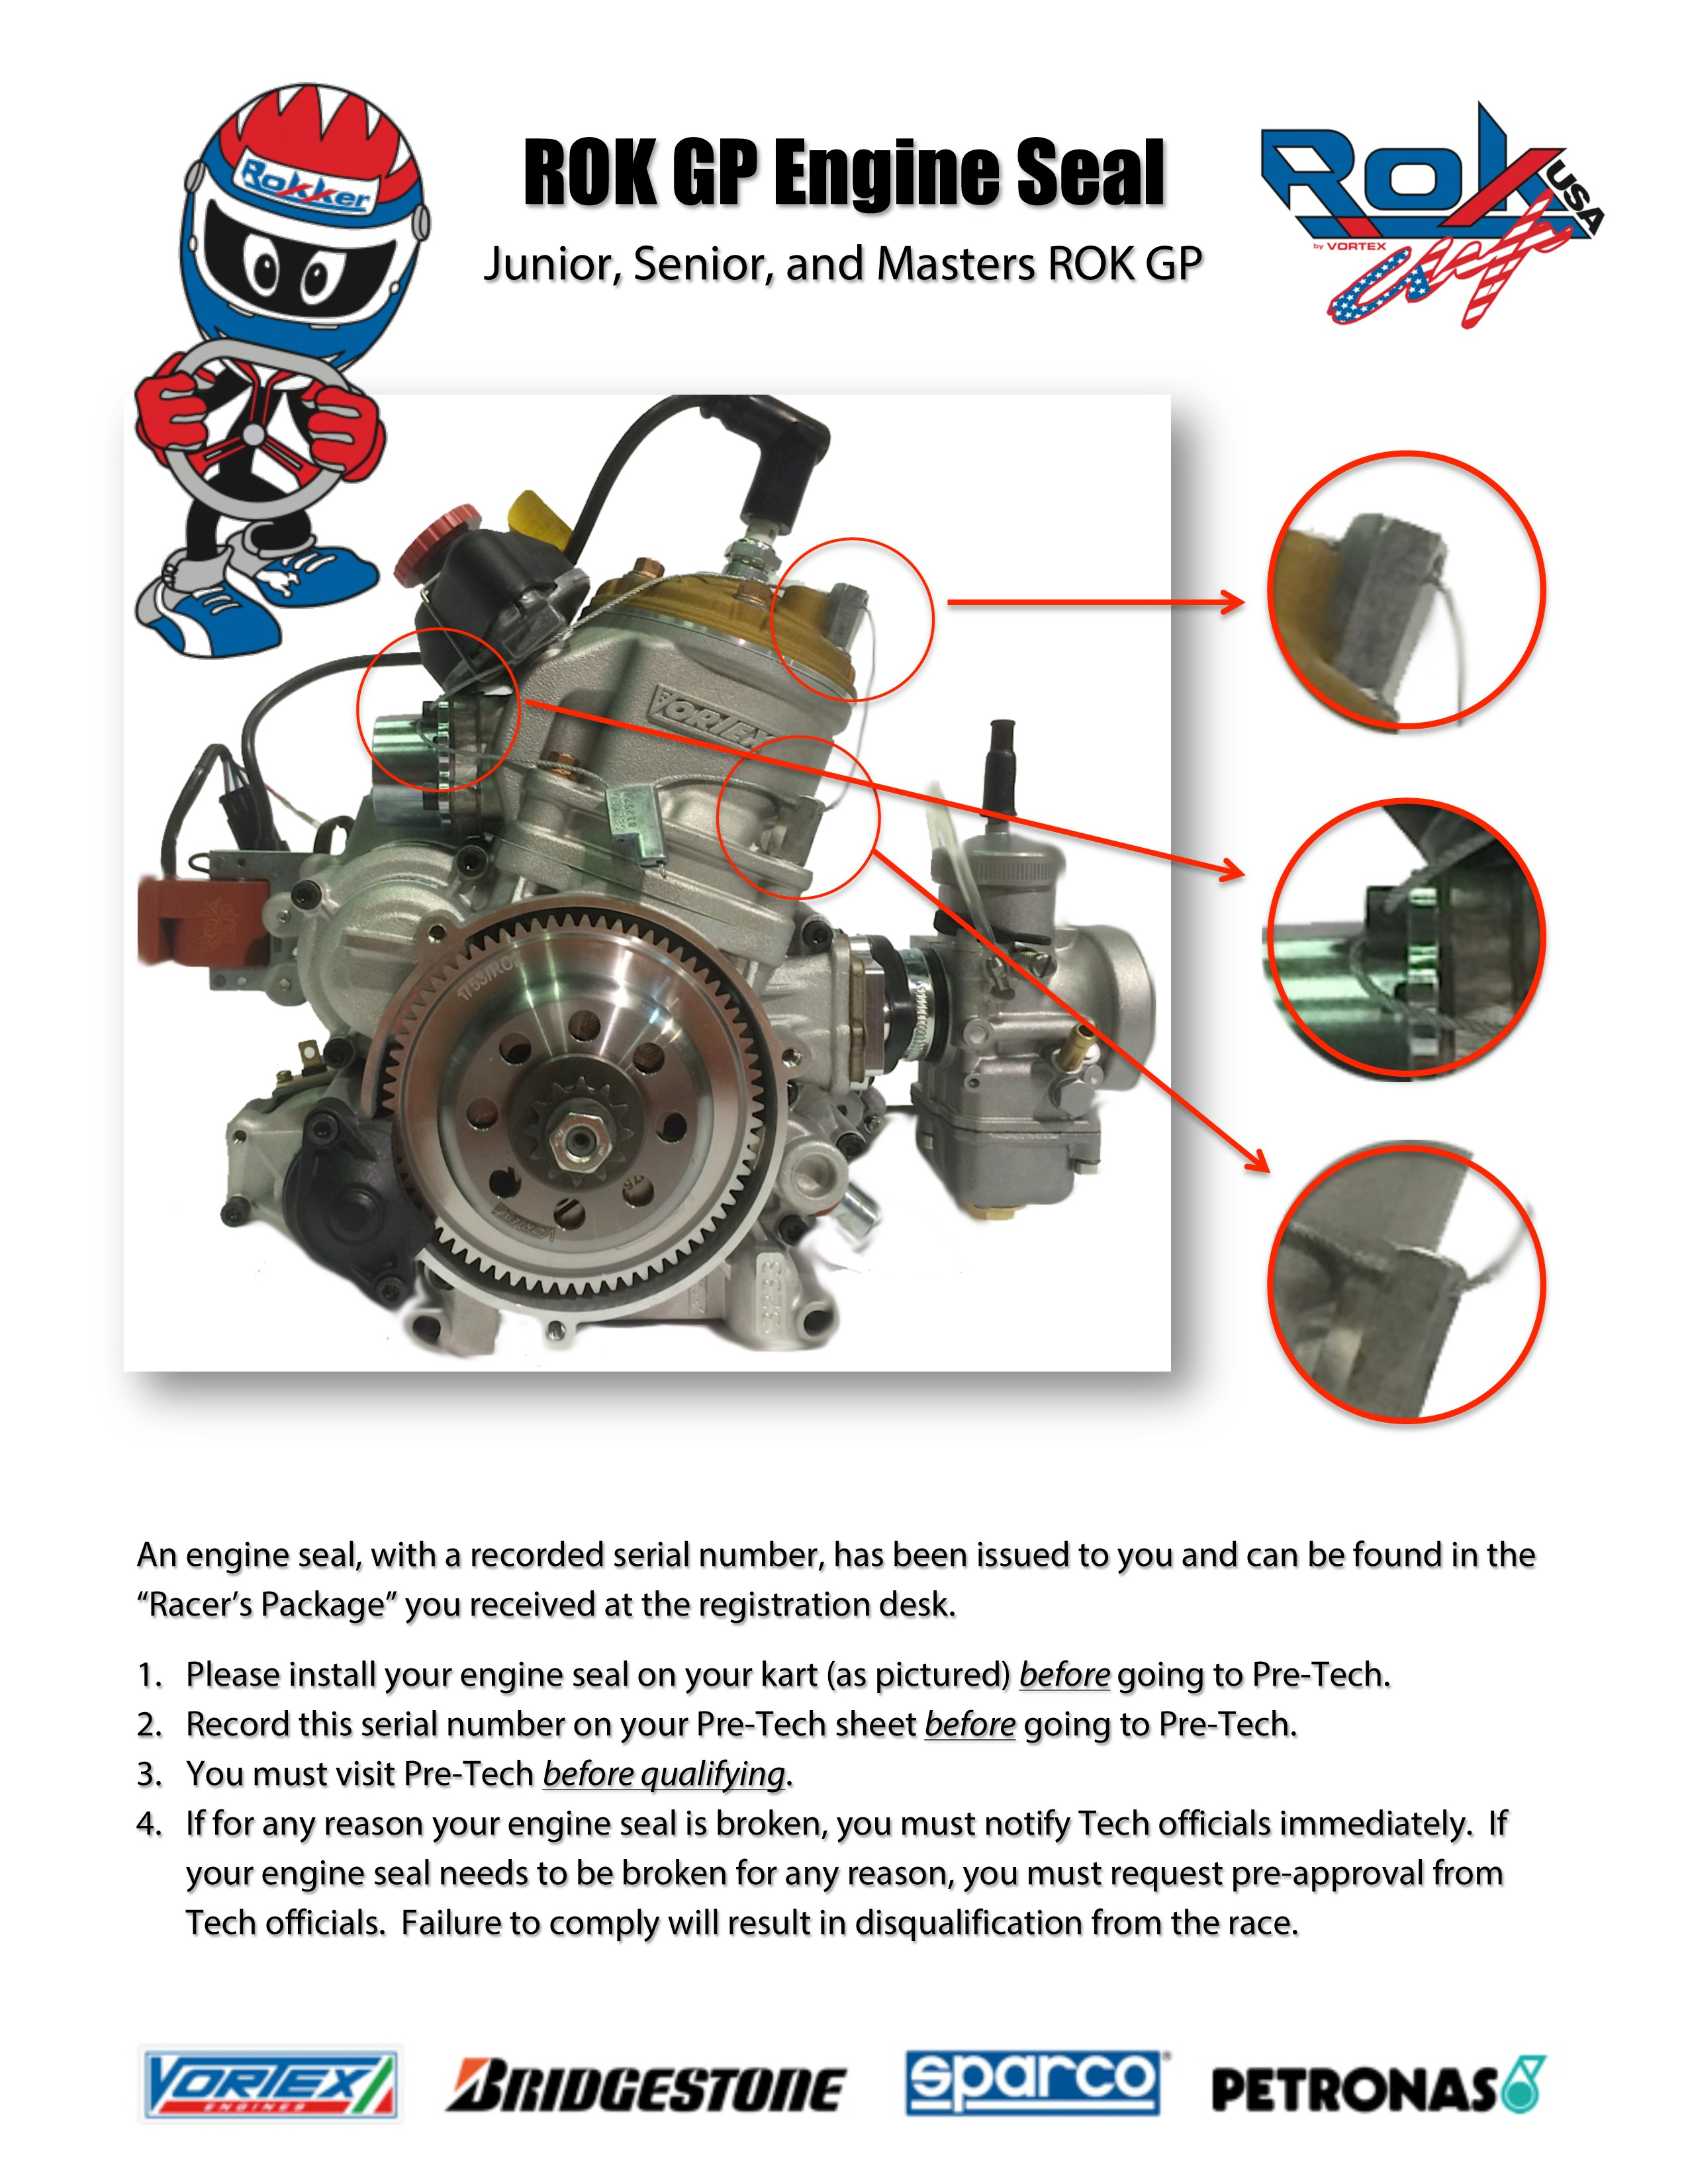 Rotax Engine Diagram Rules & Regulations Maxspeed Entertainment Of Rotax Engine Diagram Ulpower Ul260i